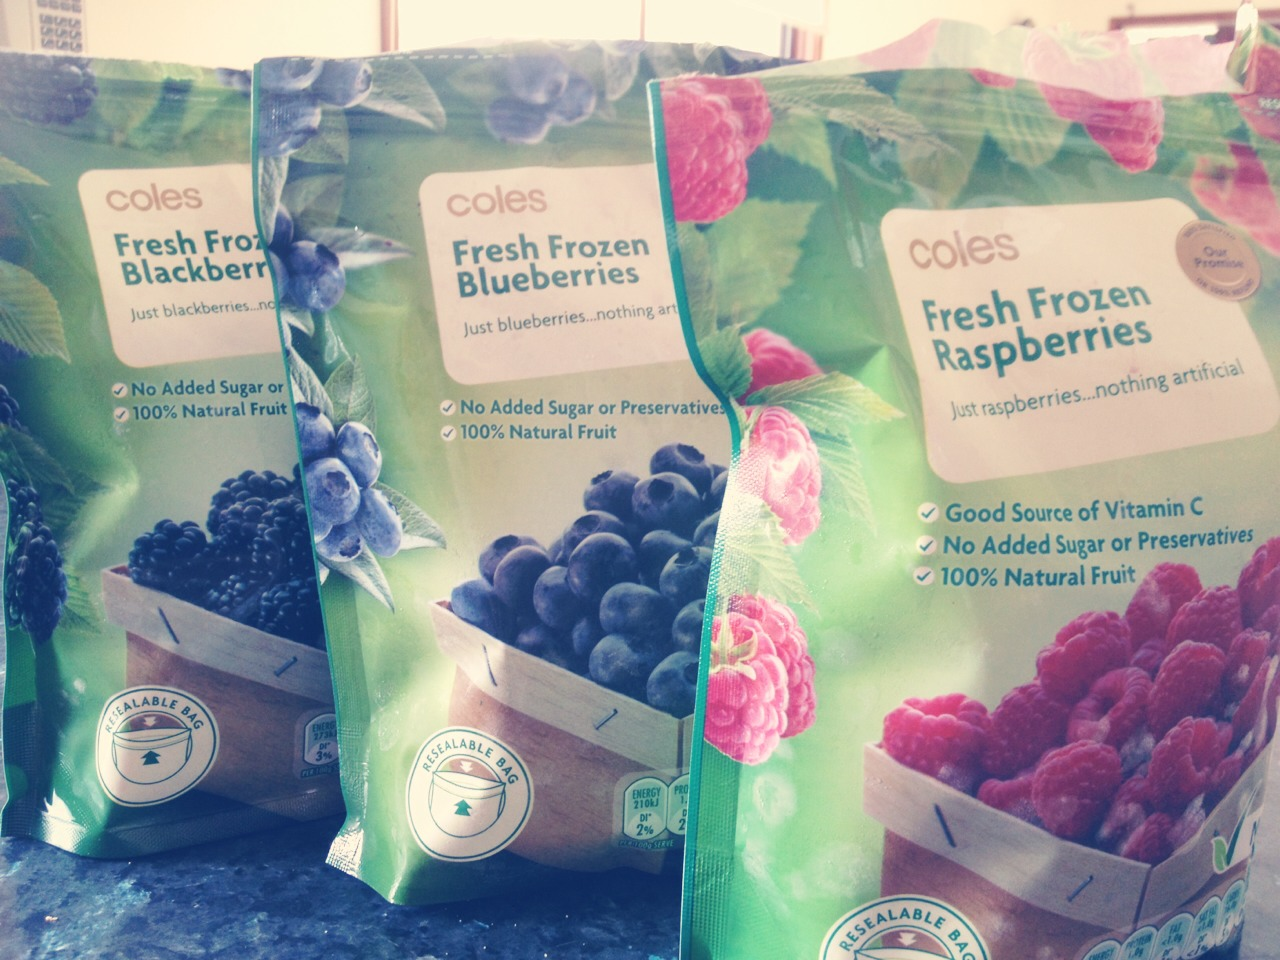 I can understand the hesitation of having 'frozen foods' however frozen berries are an excellent substitute if you want to avoid paying so much for fresh fruit (of course fresh fruit is absolutely amazing- but when you're on the go- this suits just perfectly!)